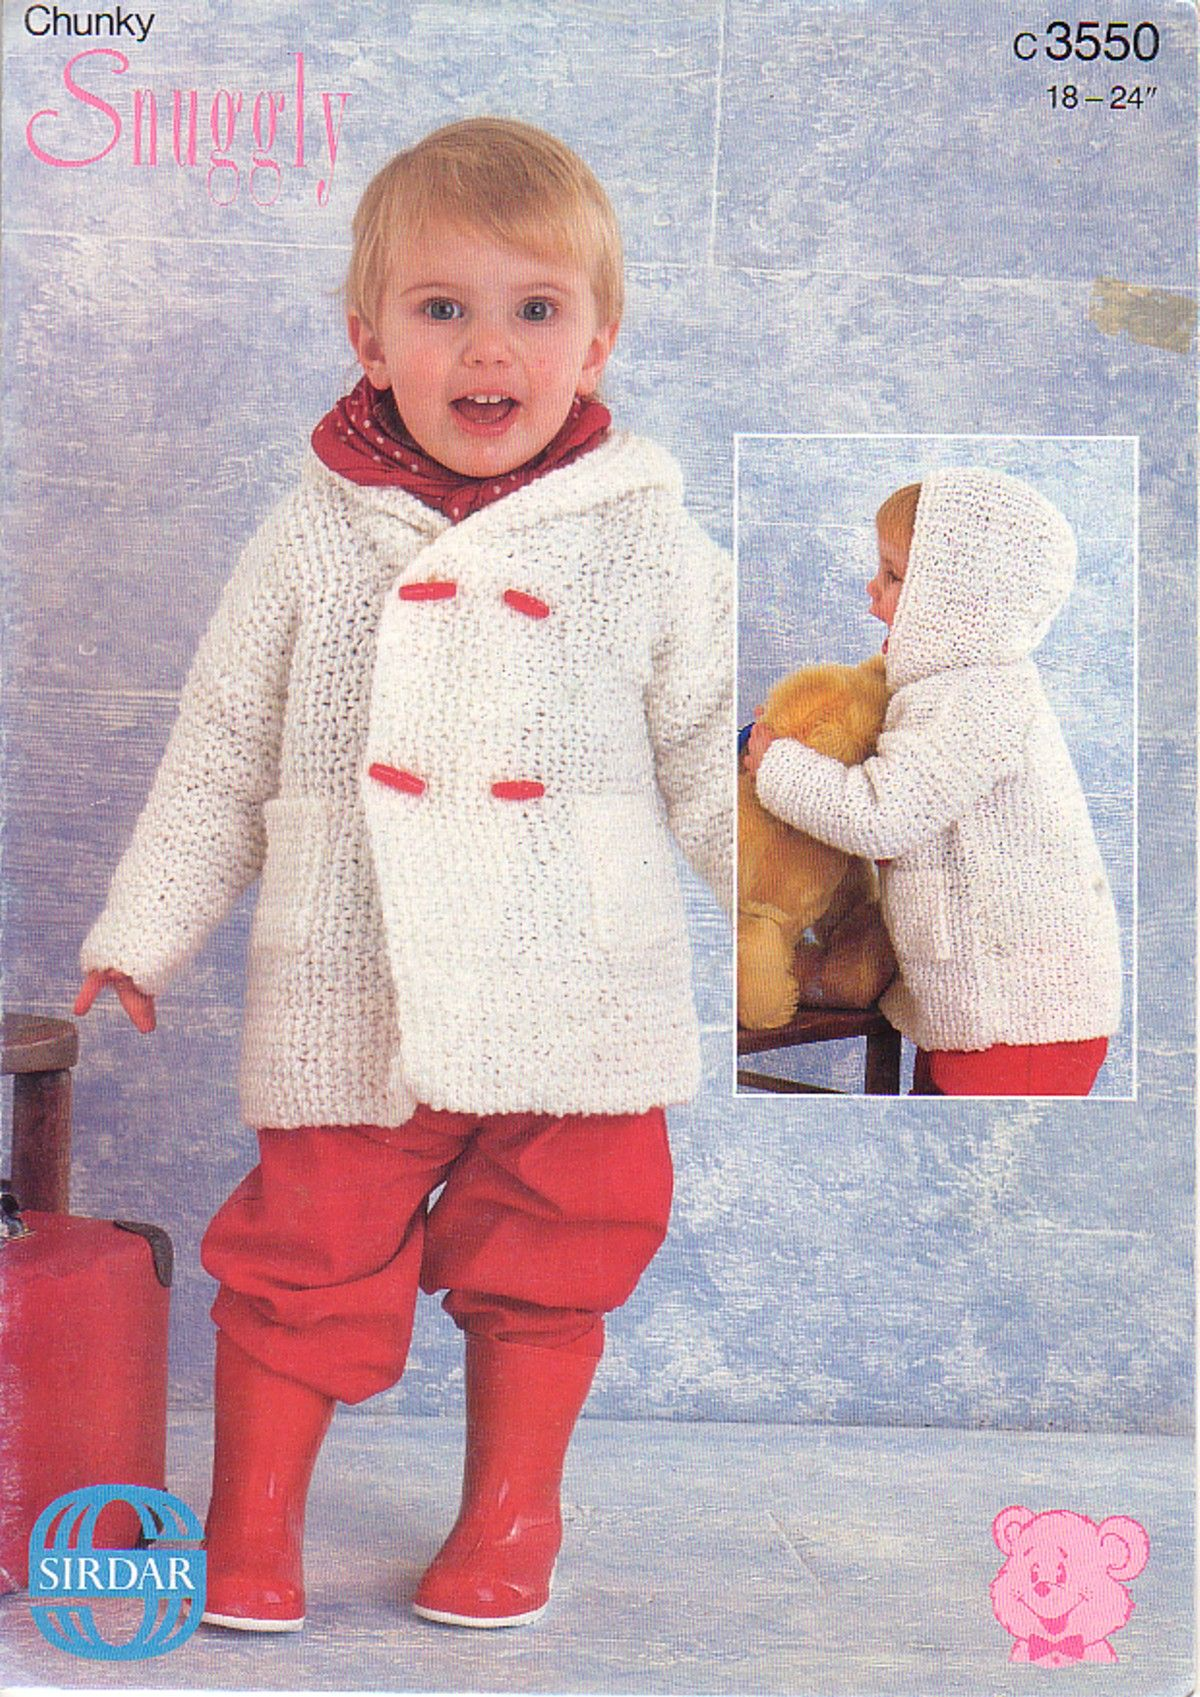 Sirdar knitting patterns 3550 chunky childrens duffle coat sirdar knitting patterns 3550 chunky childrens duffle coat bankloansurffo Images